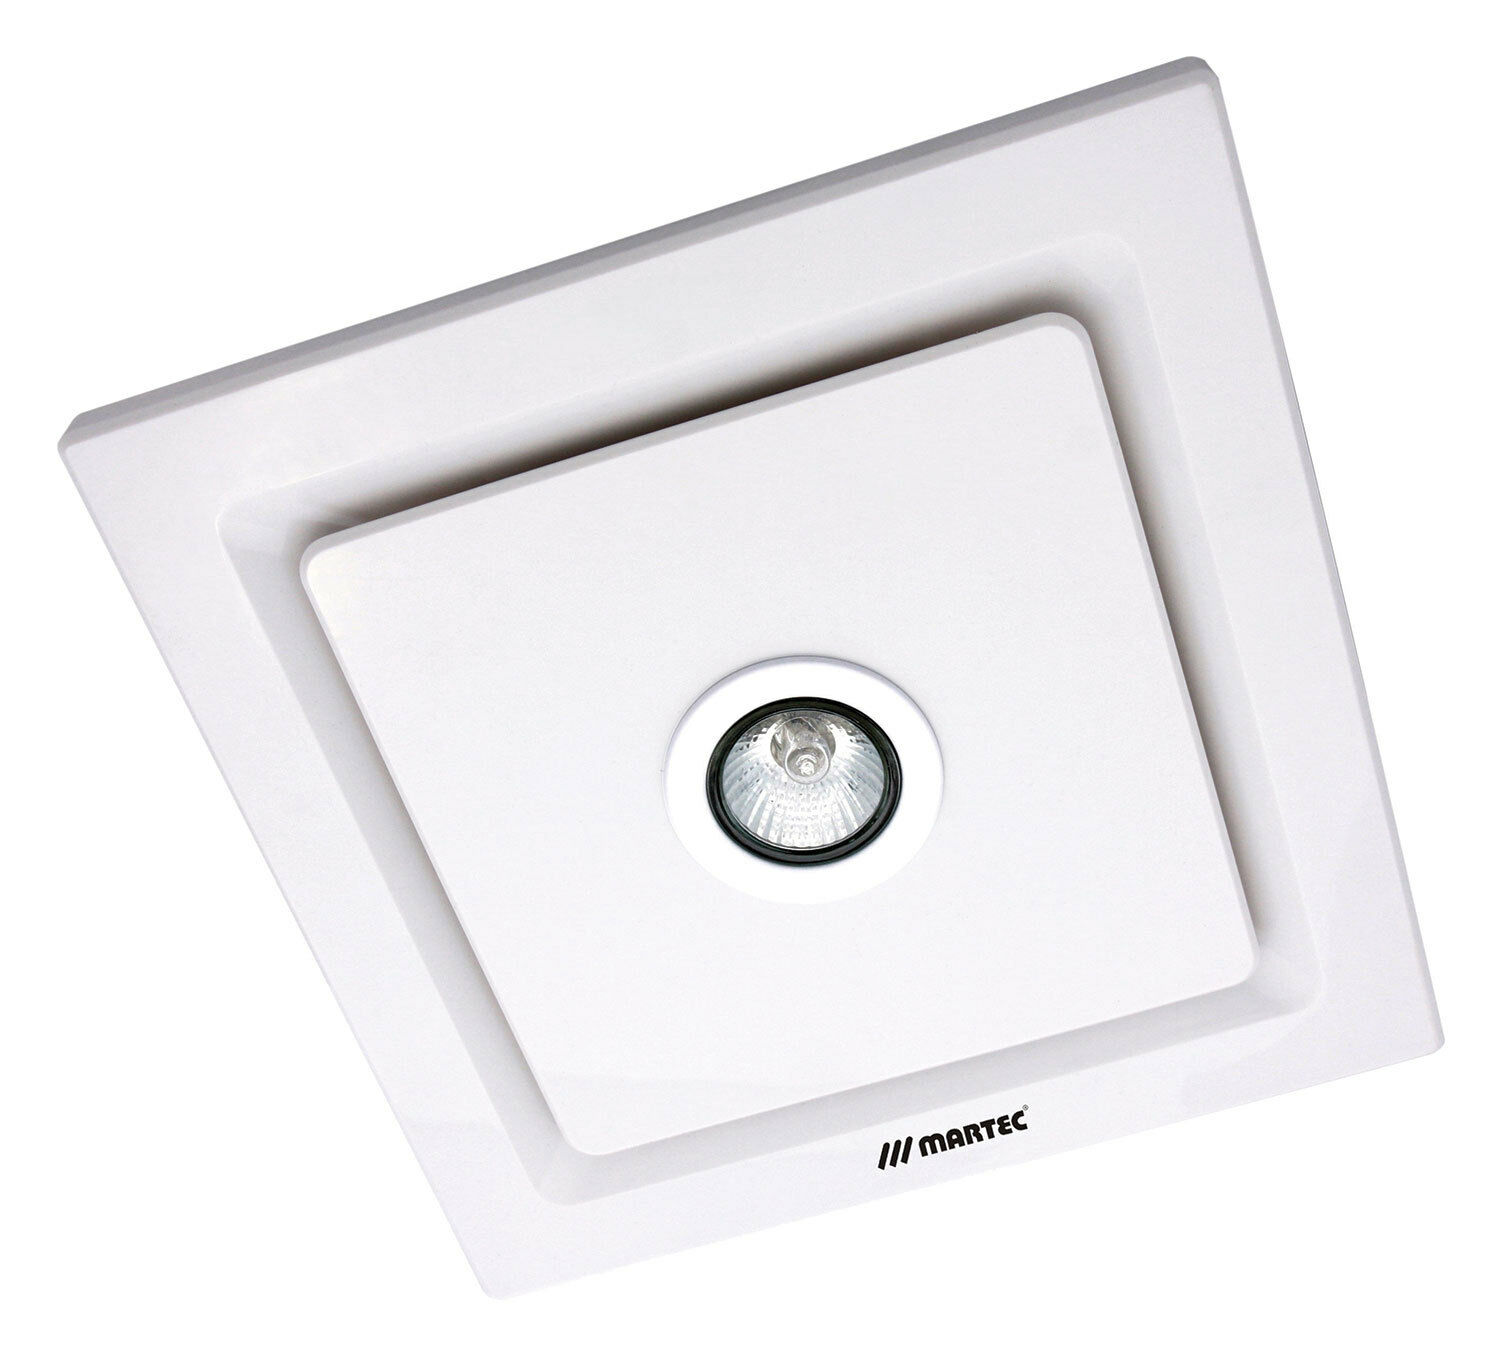 Tetra white with led light bathroom exhaust fan mxflt25w for Bathroom exhaust fan with led light